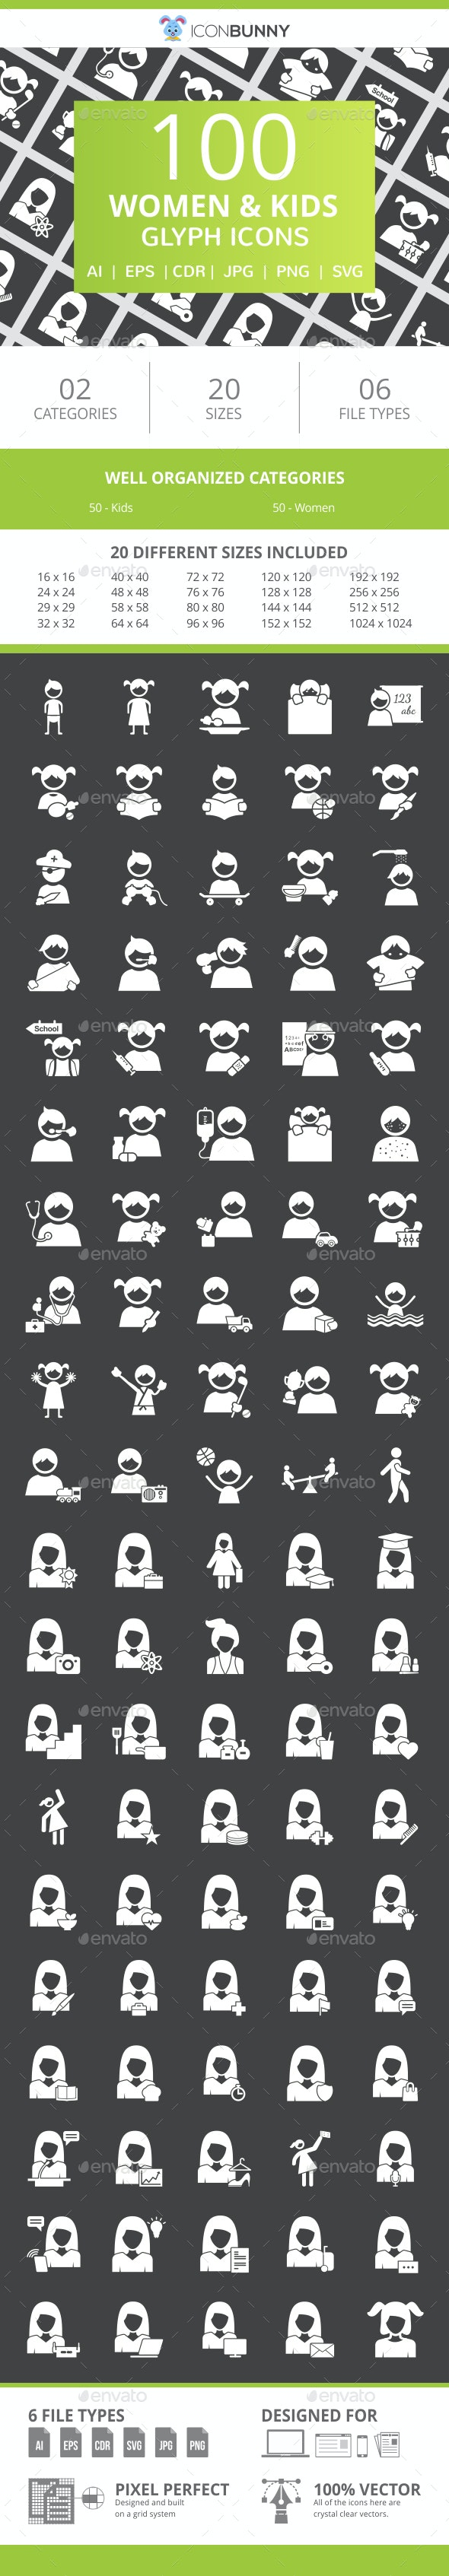 100 Women & Kids Glyph Inverted Icons - Icons